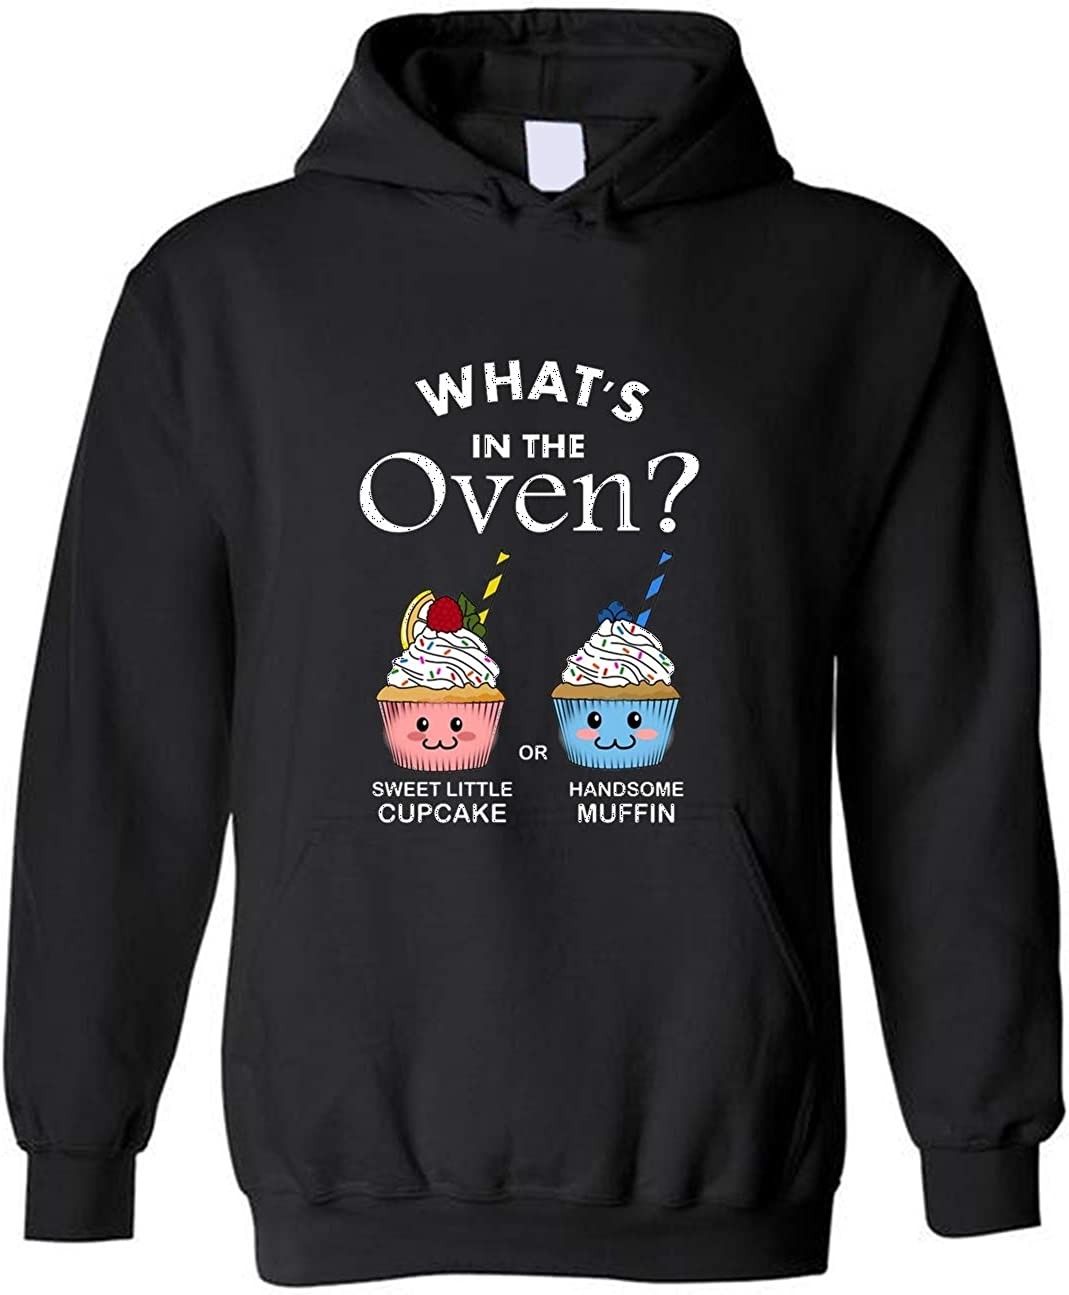 Whats in The Oven Gender Reveal Gift Hoodies